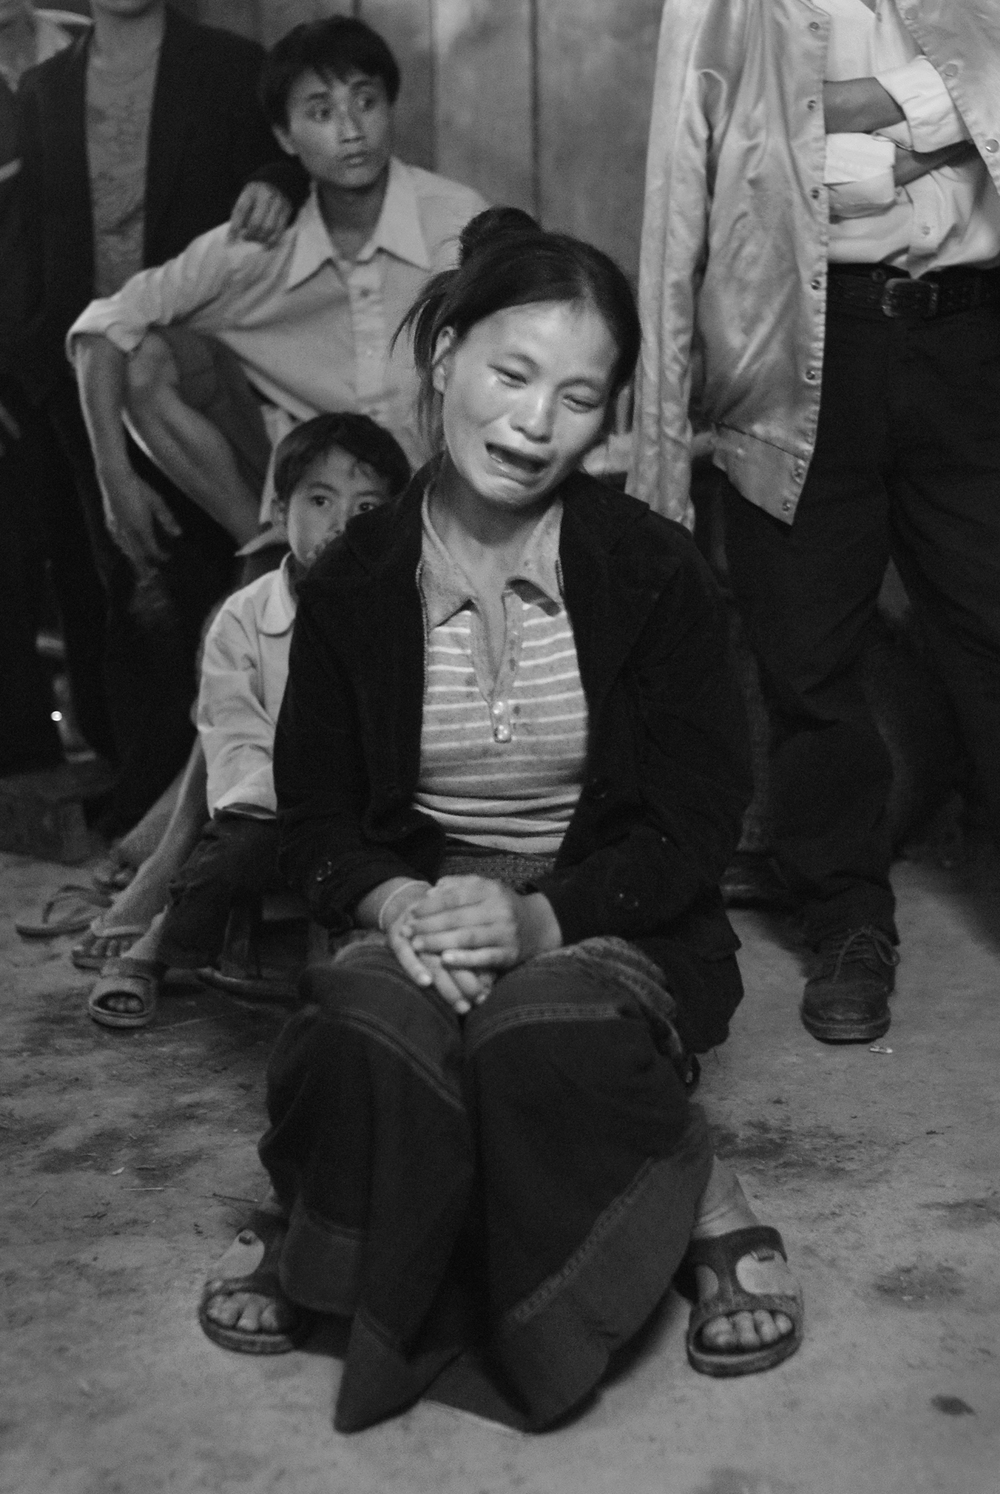 A young Hmong woman wails at the funeral for her husband who died earlier in the day in rural Xieng Khouang Province, Laos. He was killed in a family feud by a booby trap made from an unexploded bomb set in a trail. The Hmong are among the poorest of Laos' many ethnic groups.